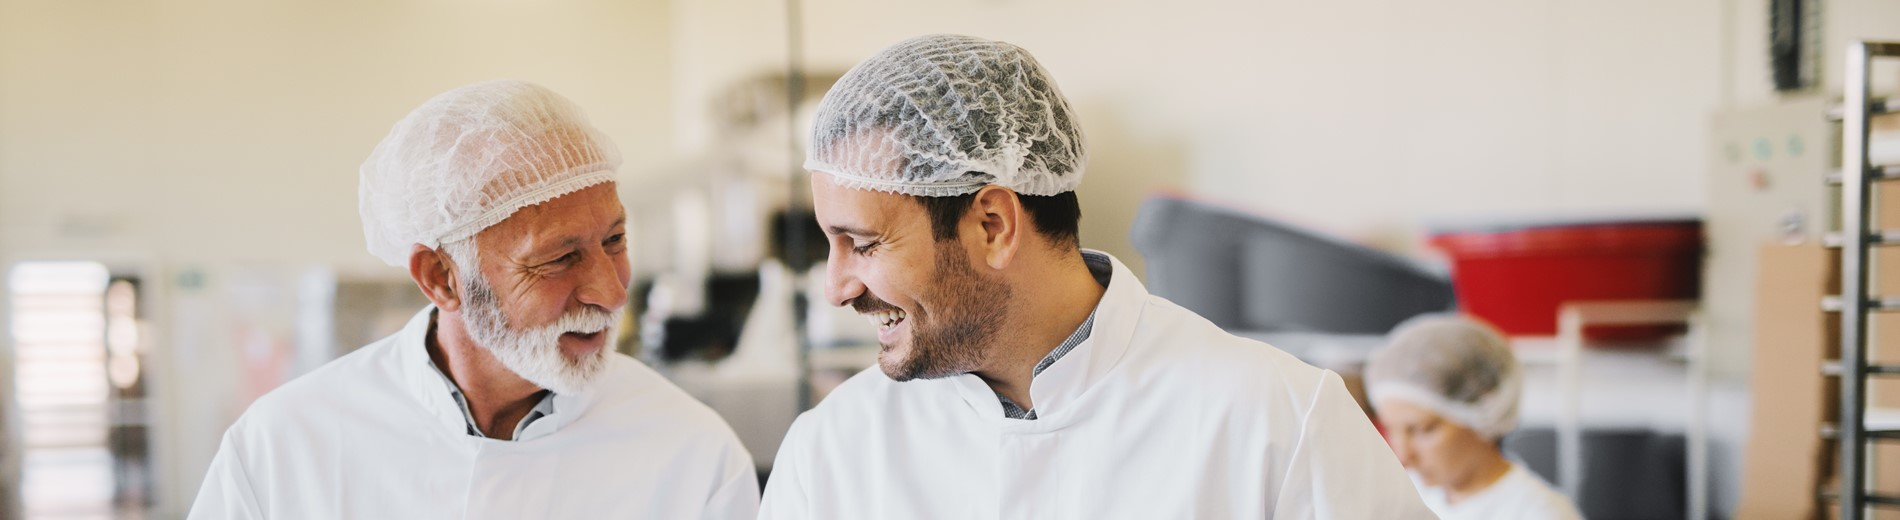 Online Level 1 in Food Safety - Manufacturing